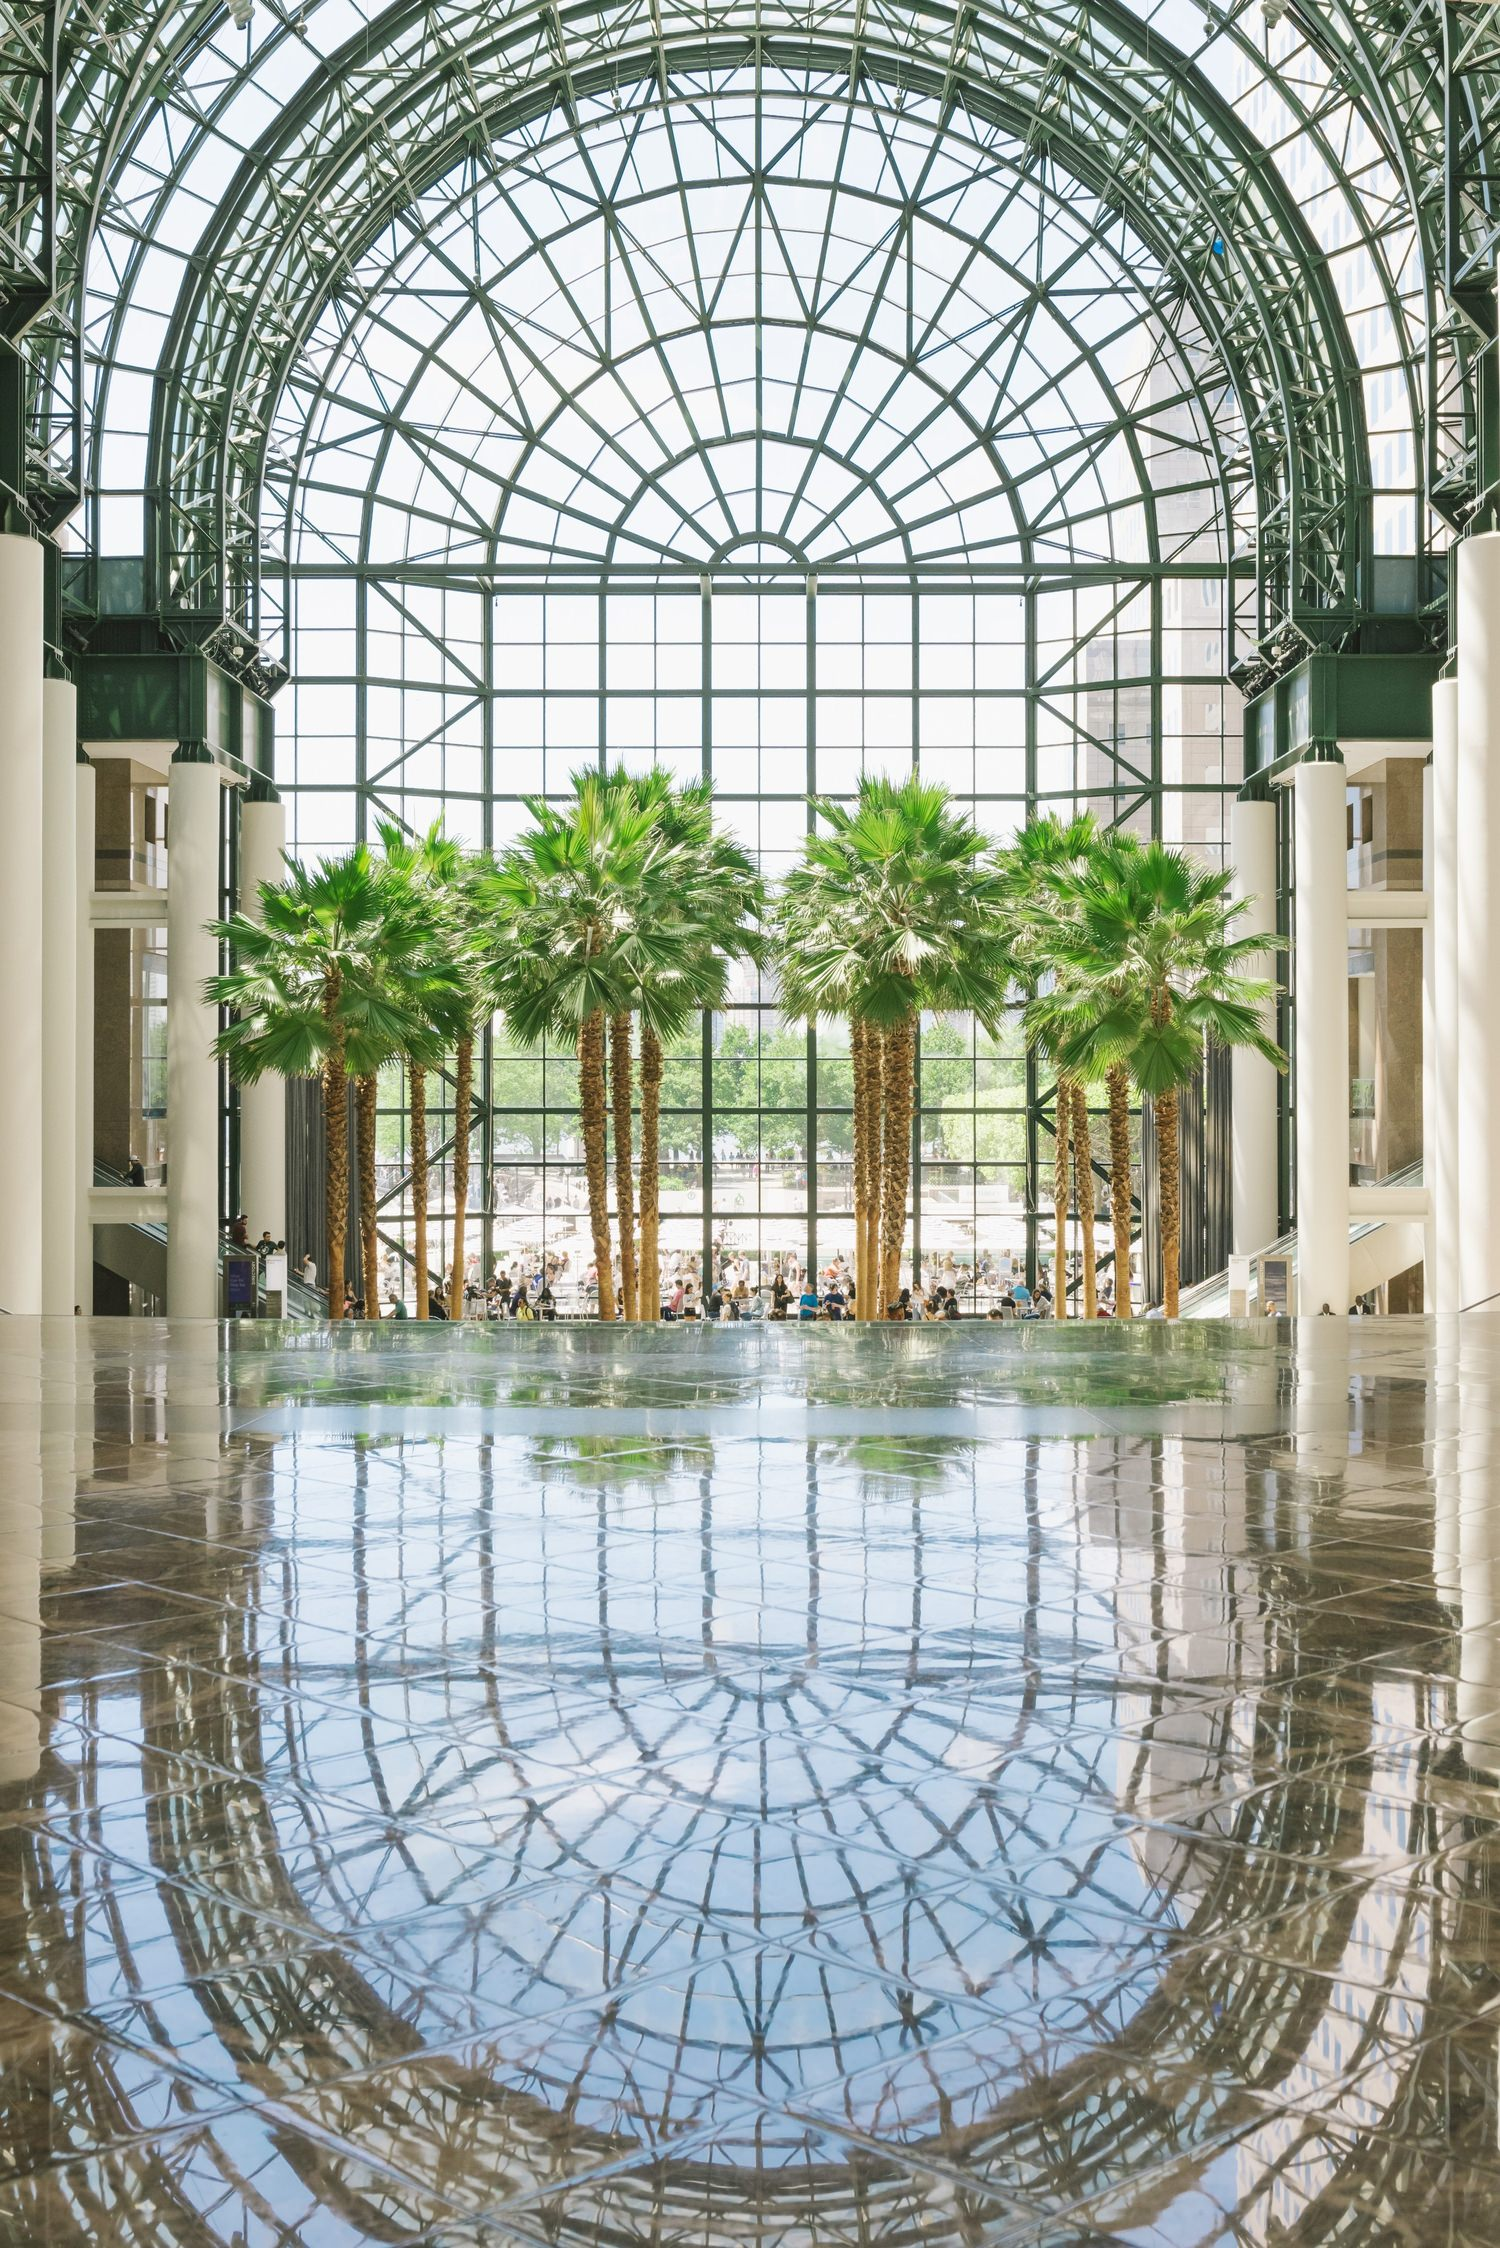 An indoor pool that is next to a row of palm trees that is under a arched glass roof.